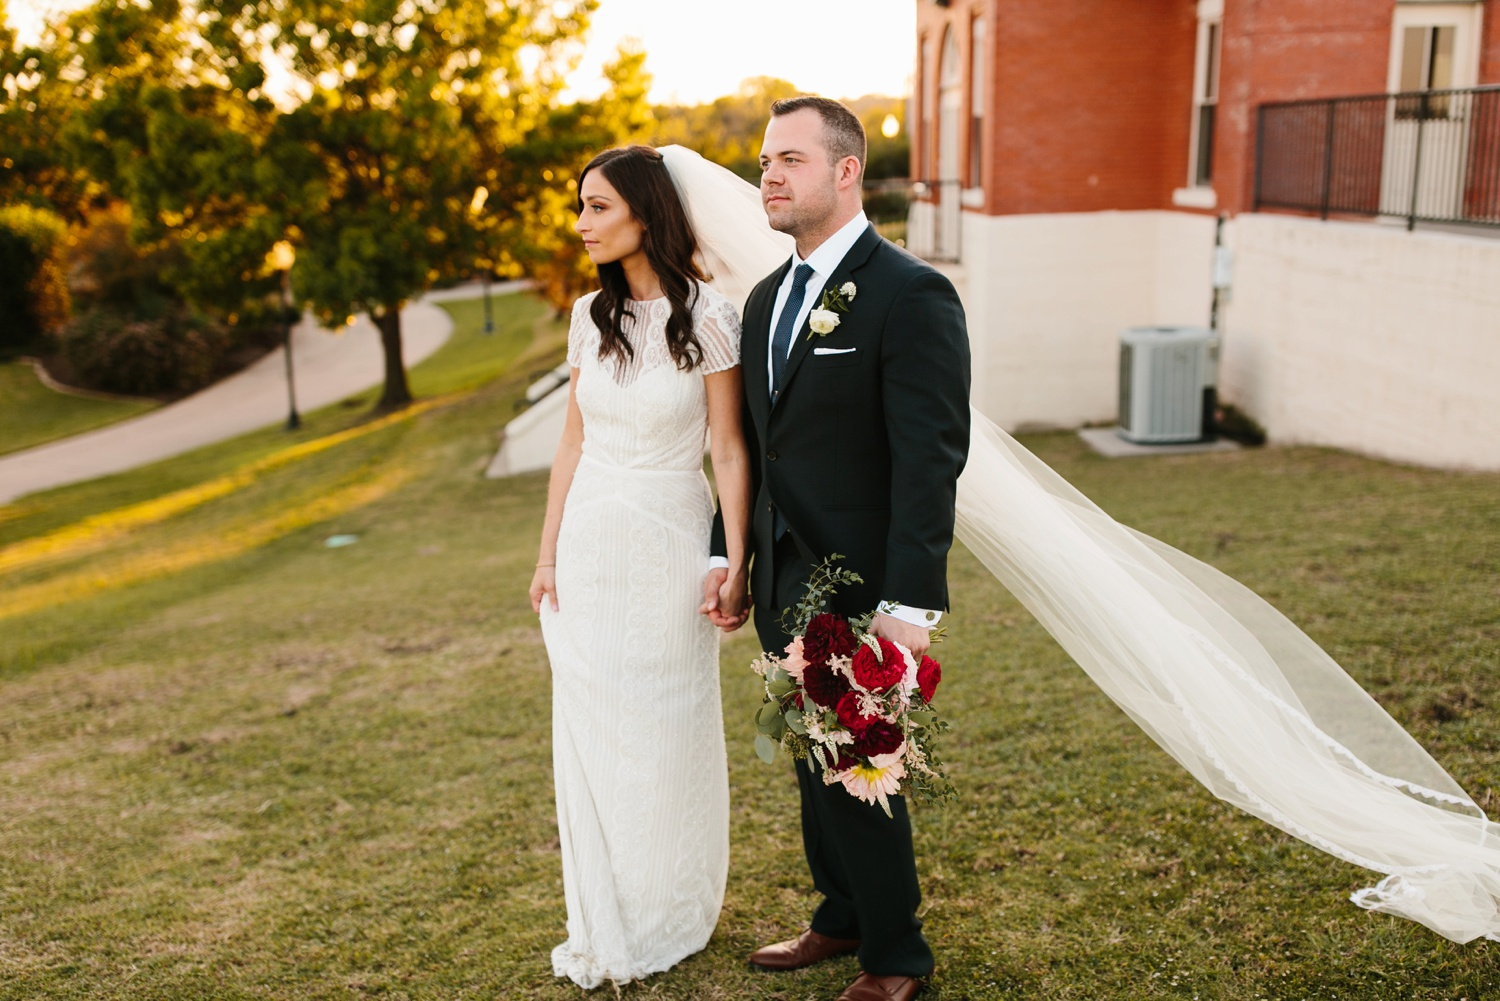 Kadee + Tyler | a raw, emotional wedding at the Filter Building on White Rock Lake in Dallas, TX by North Texas Wedding Photographer, Rachel Meagan Photography 159